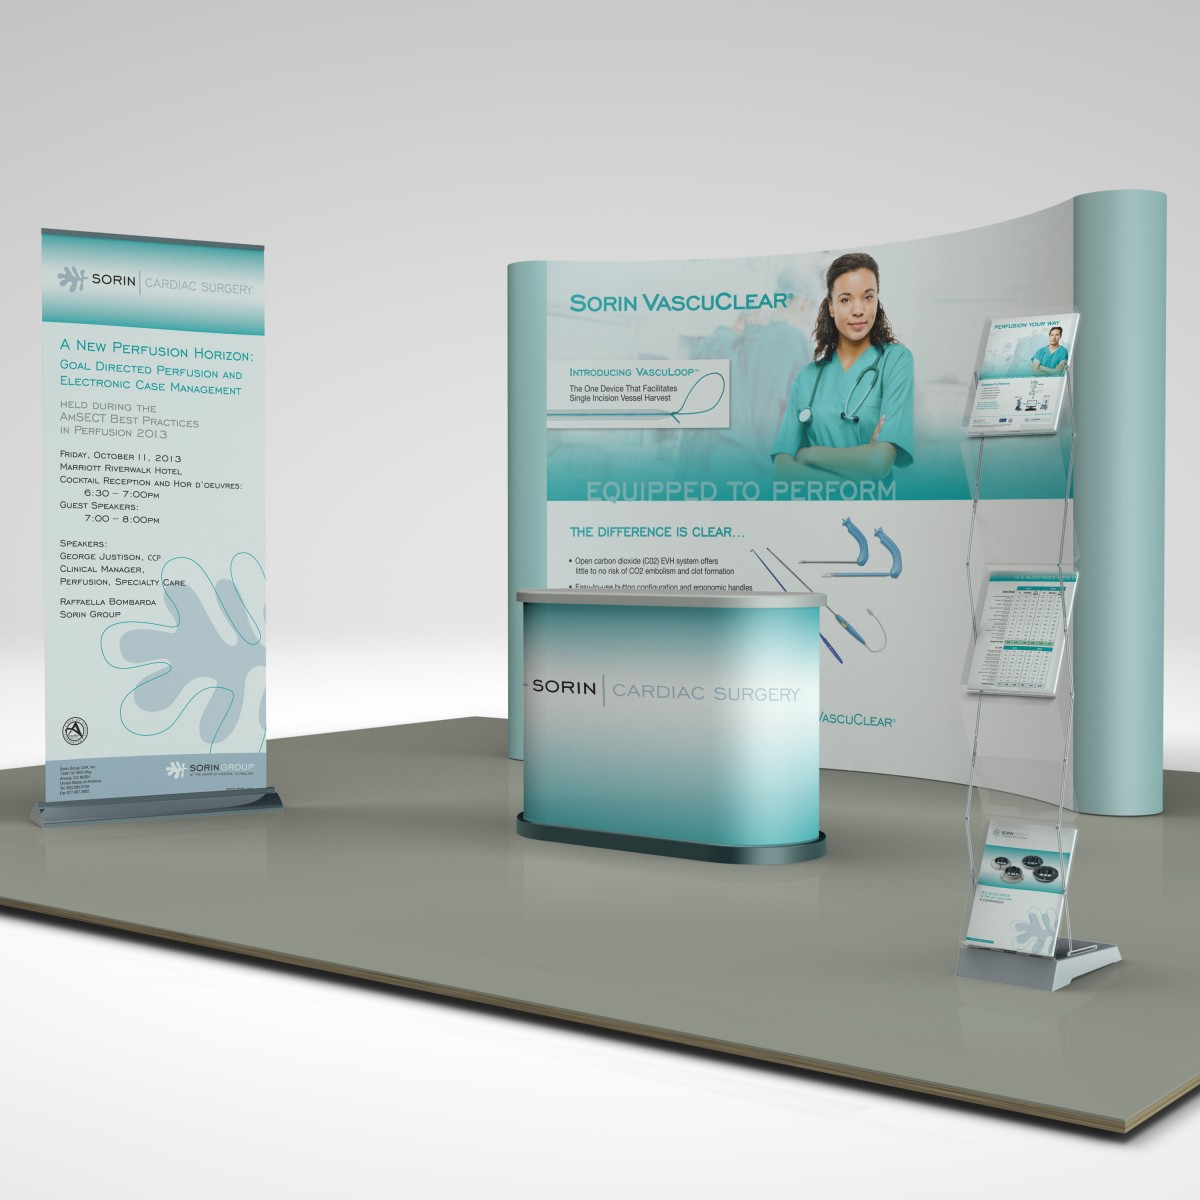 Sorin trade show display